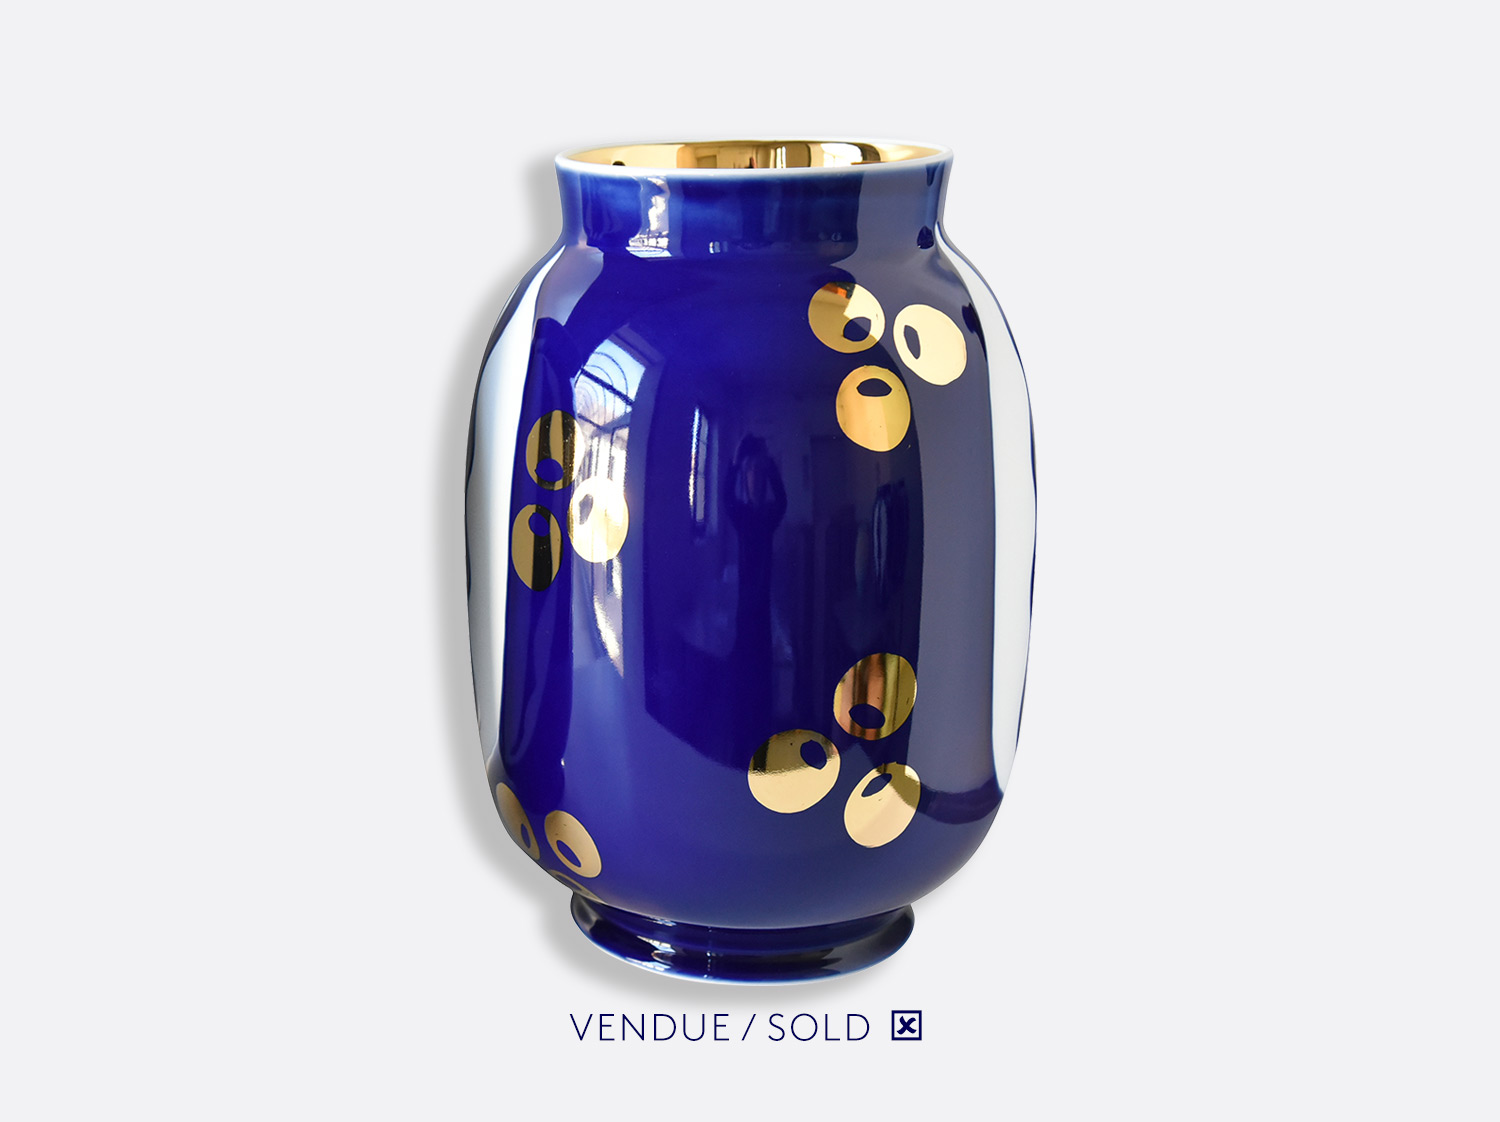 Vase toscan n°20 en porcelaine de la collection Atelier Buffile - Algues et Poissons Bernardaud